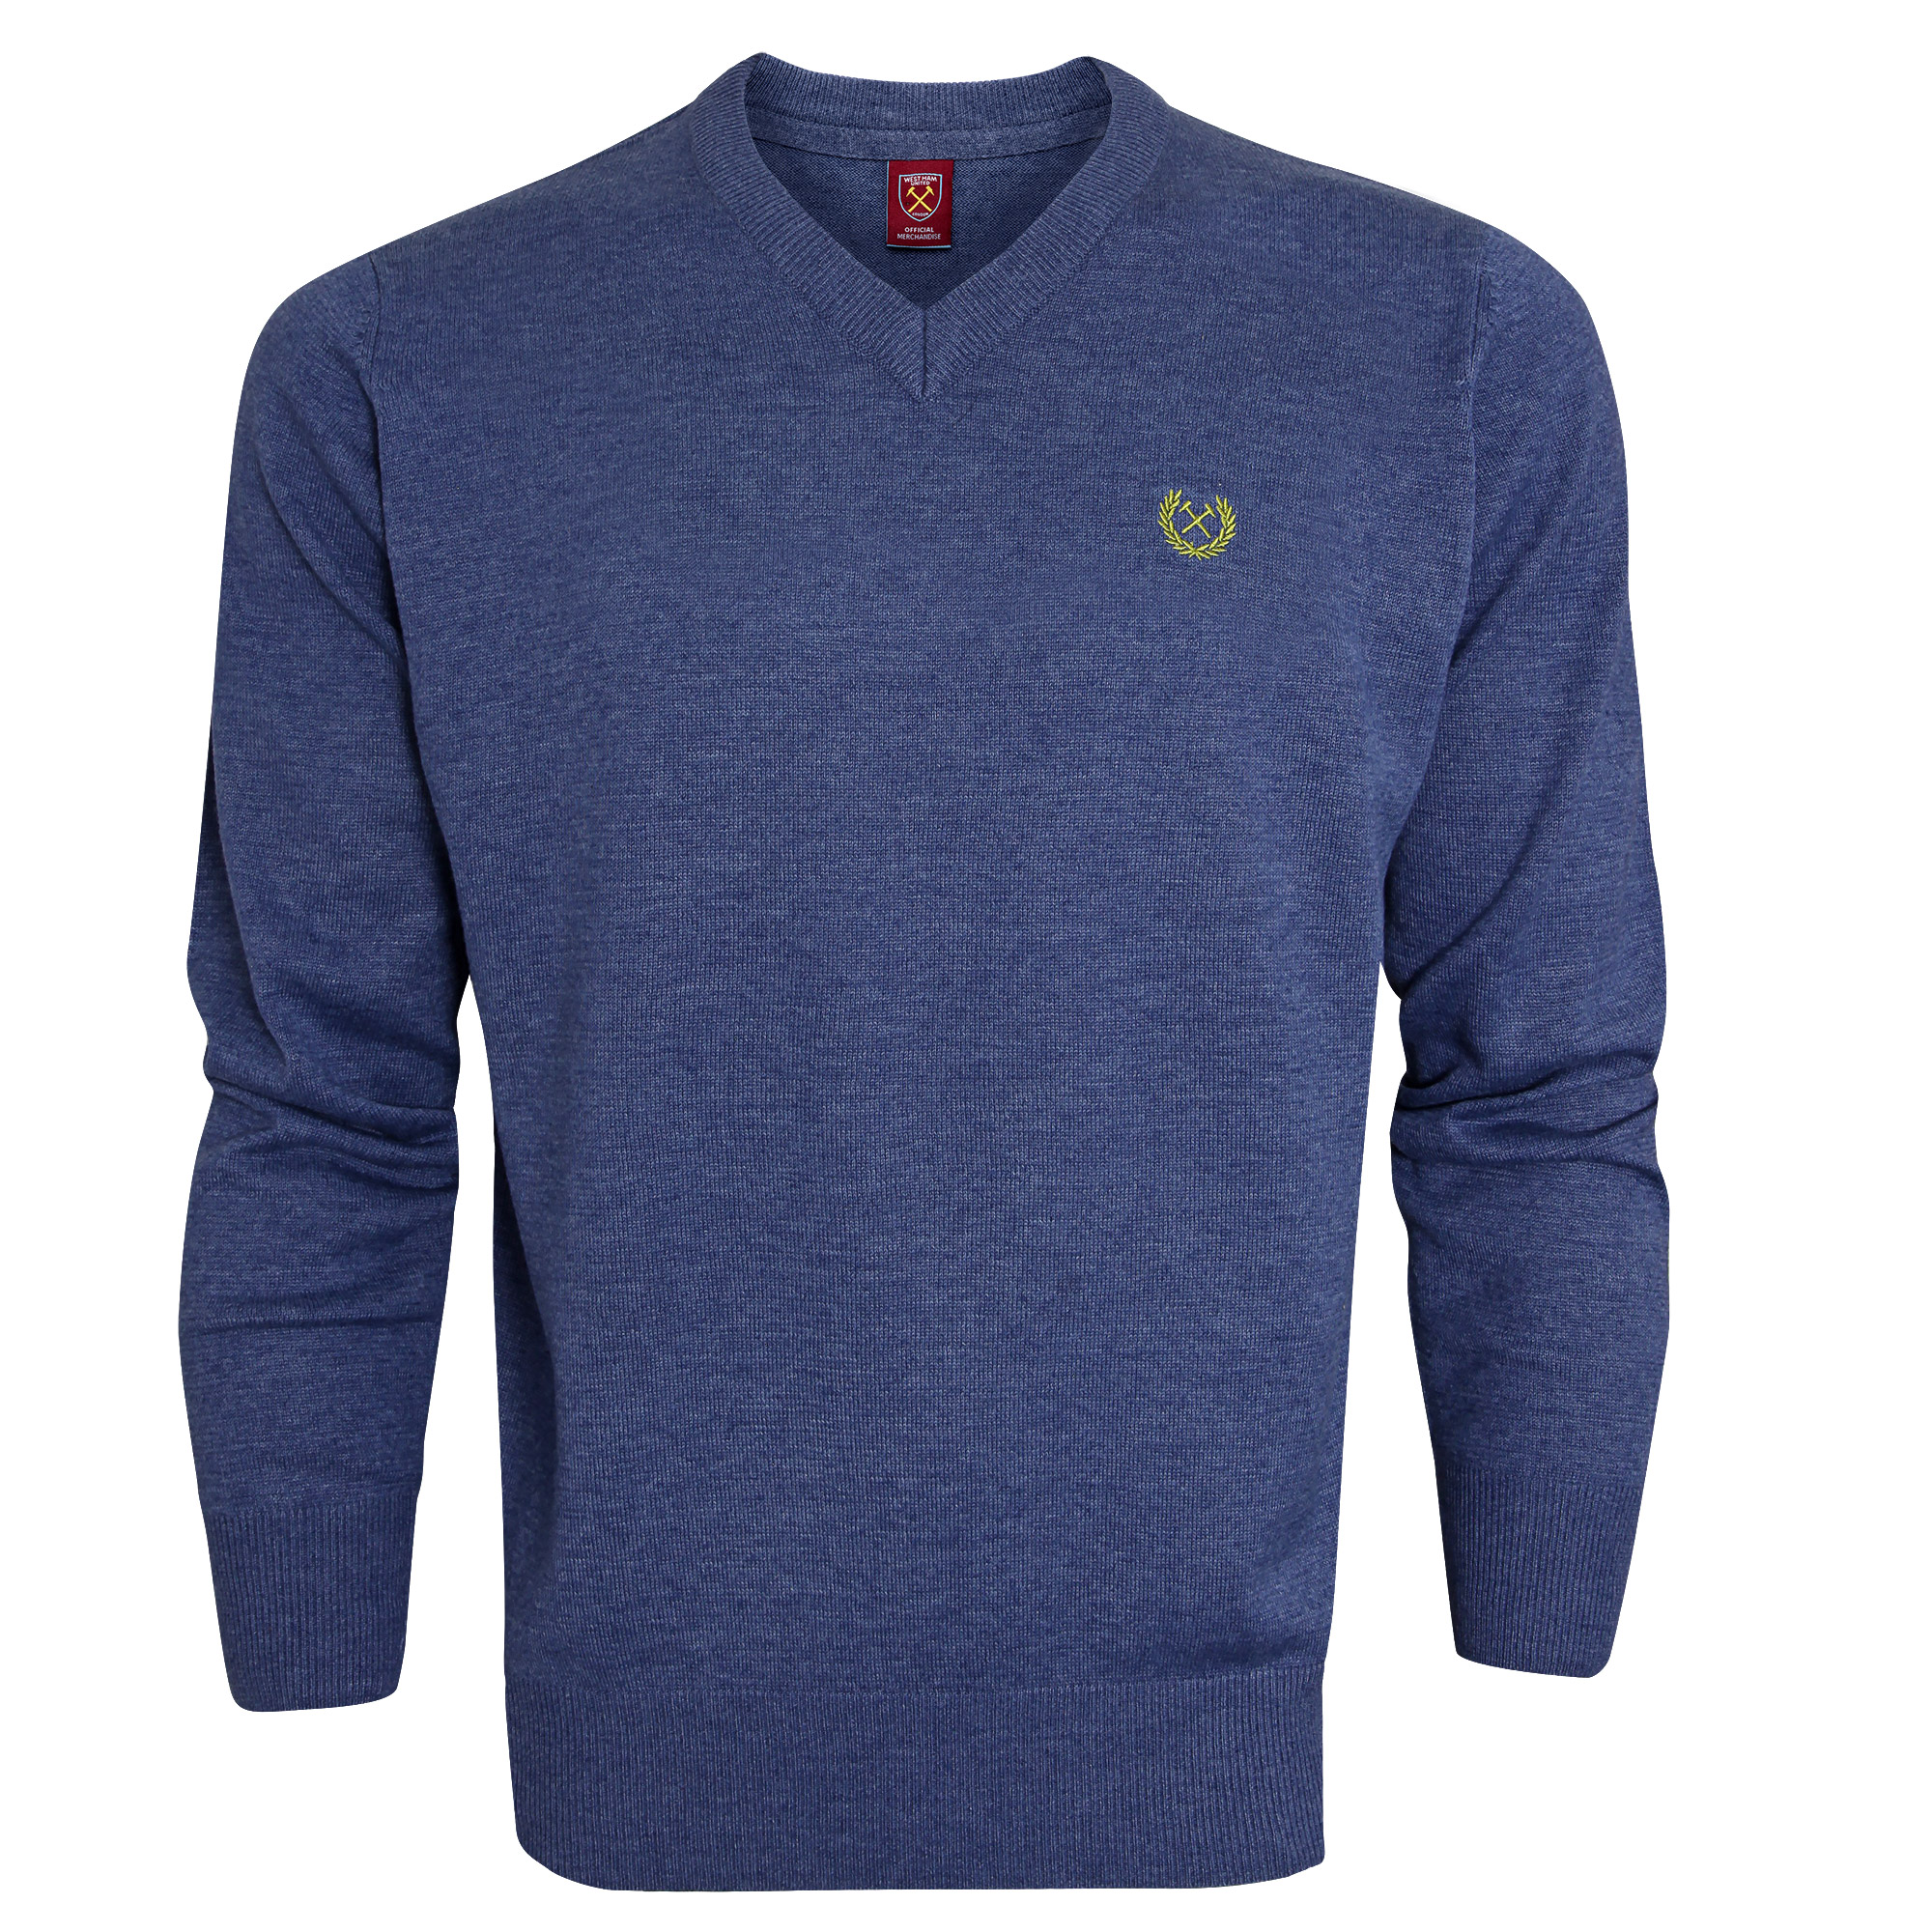 BLUE MARL V-NECK JUMPER